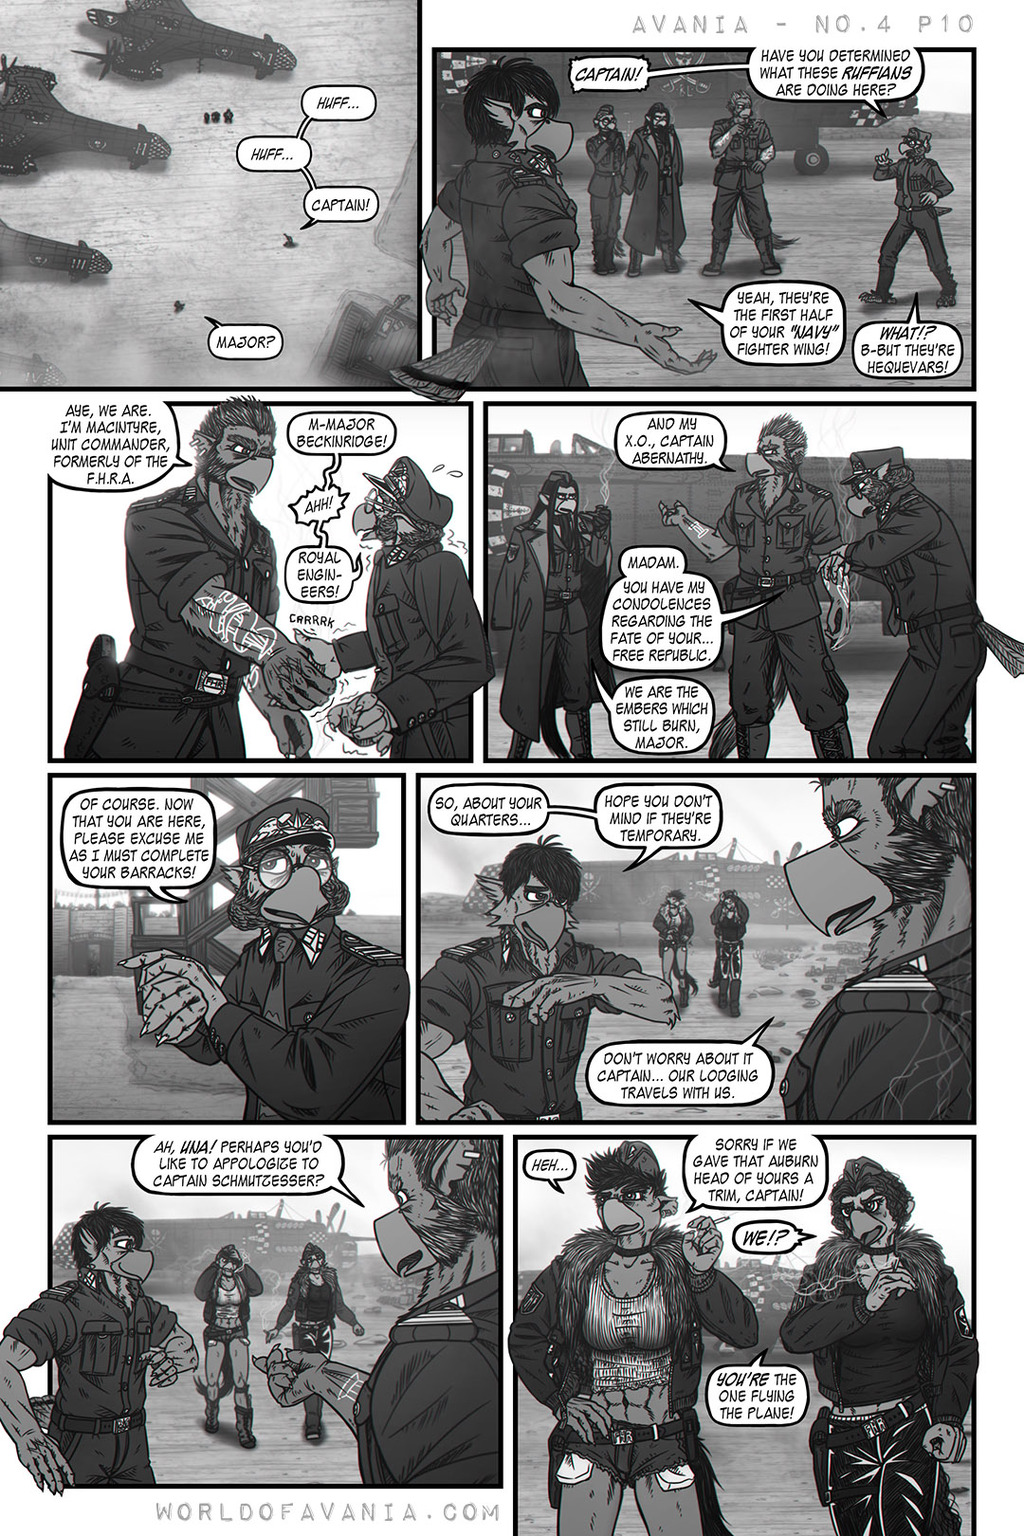 Avania Comic - Issue No.4, Page 10